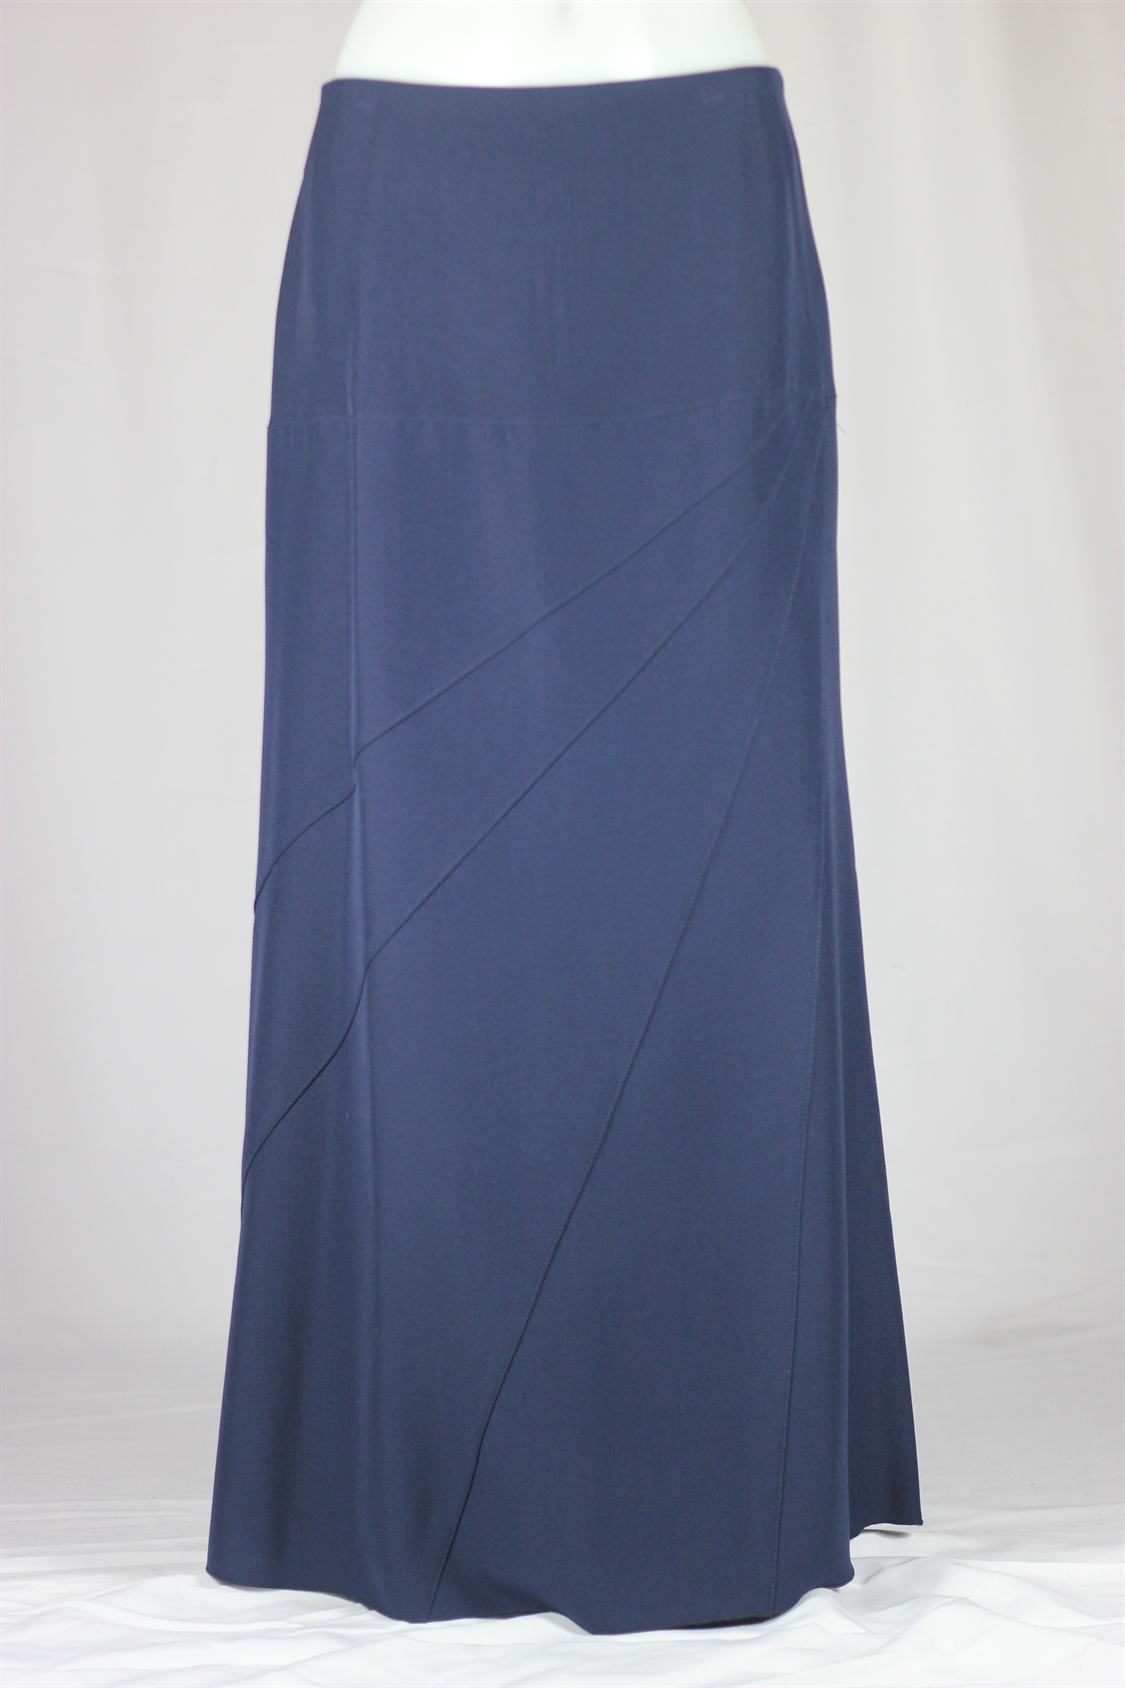 Buy low price, high quality long skirts navy with worldwide shipping on specialtysports.ga